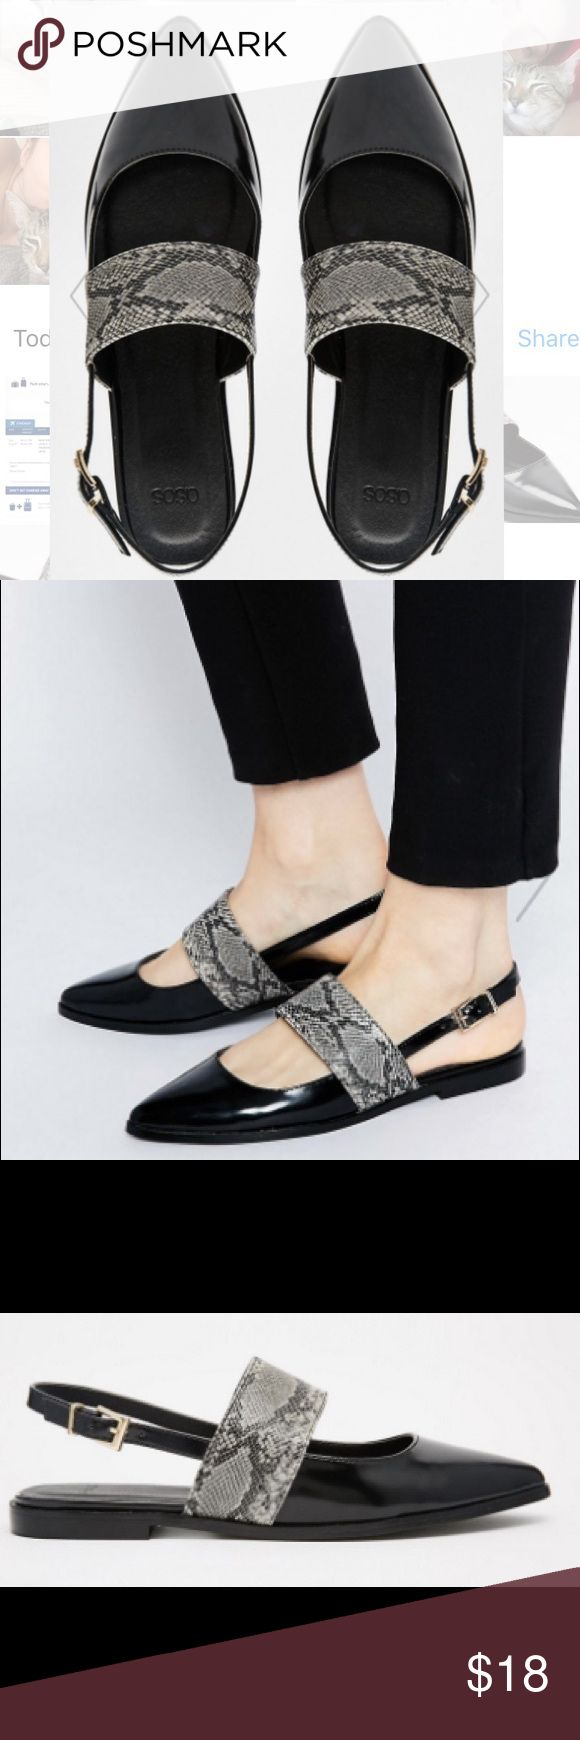 Pointed Flat Shoes Black and snake skin pointed flats from ASOS. Adjustable sling back strap with buckle closure. Asos Shoes Flats & Loafers